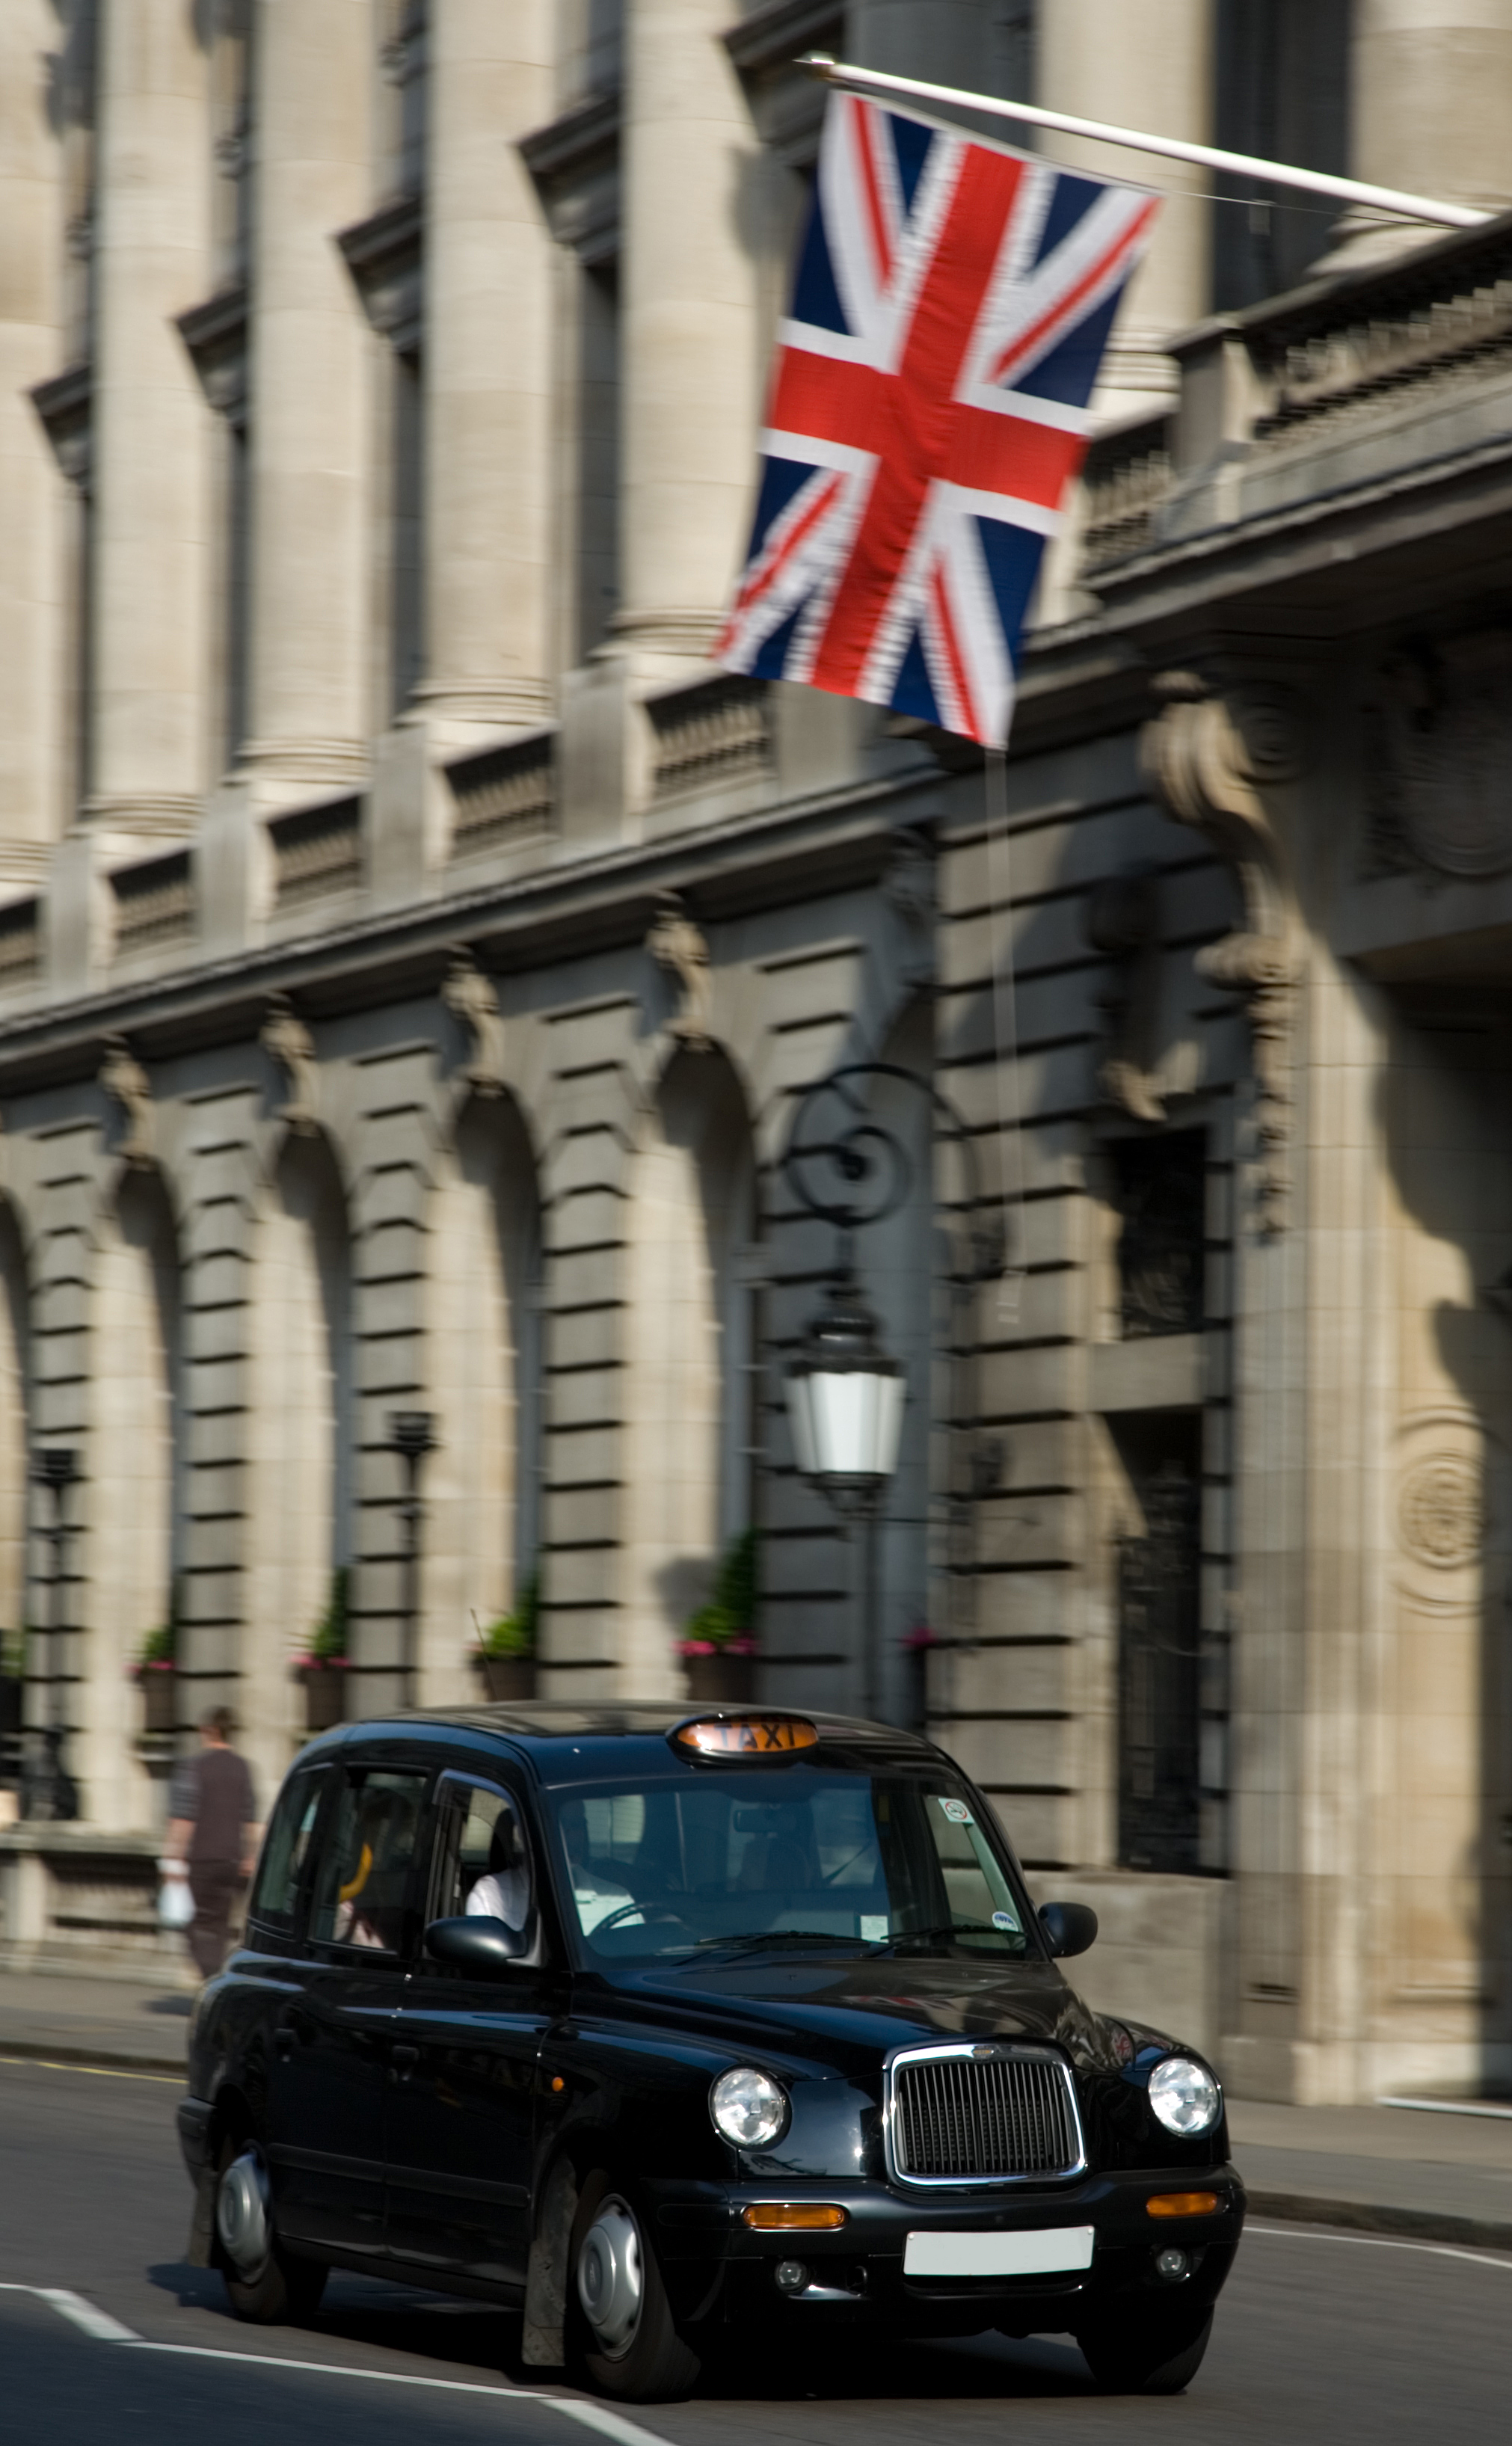 London Black Cab - electric taxi